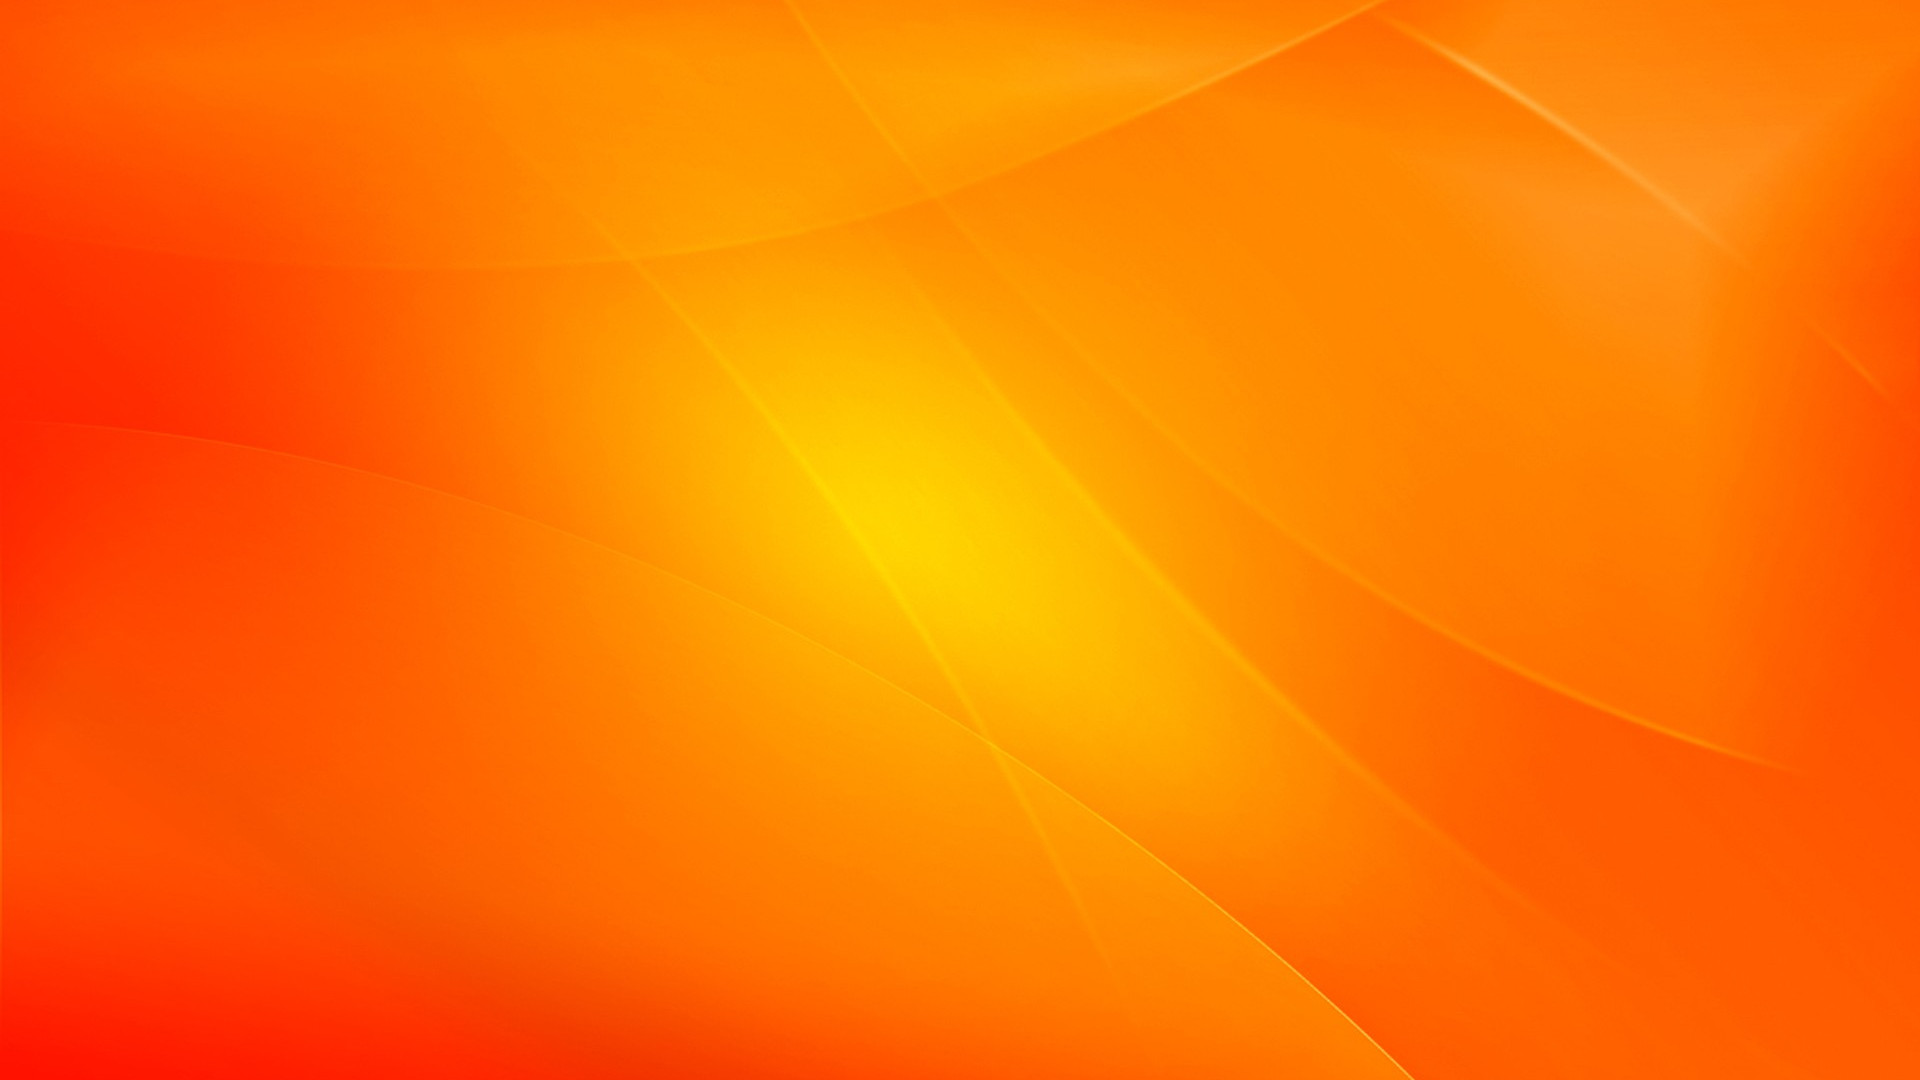 orange curves abstract hd wallpaper 1920x1080 5849